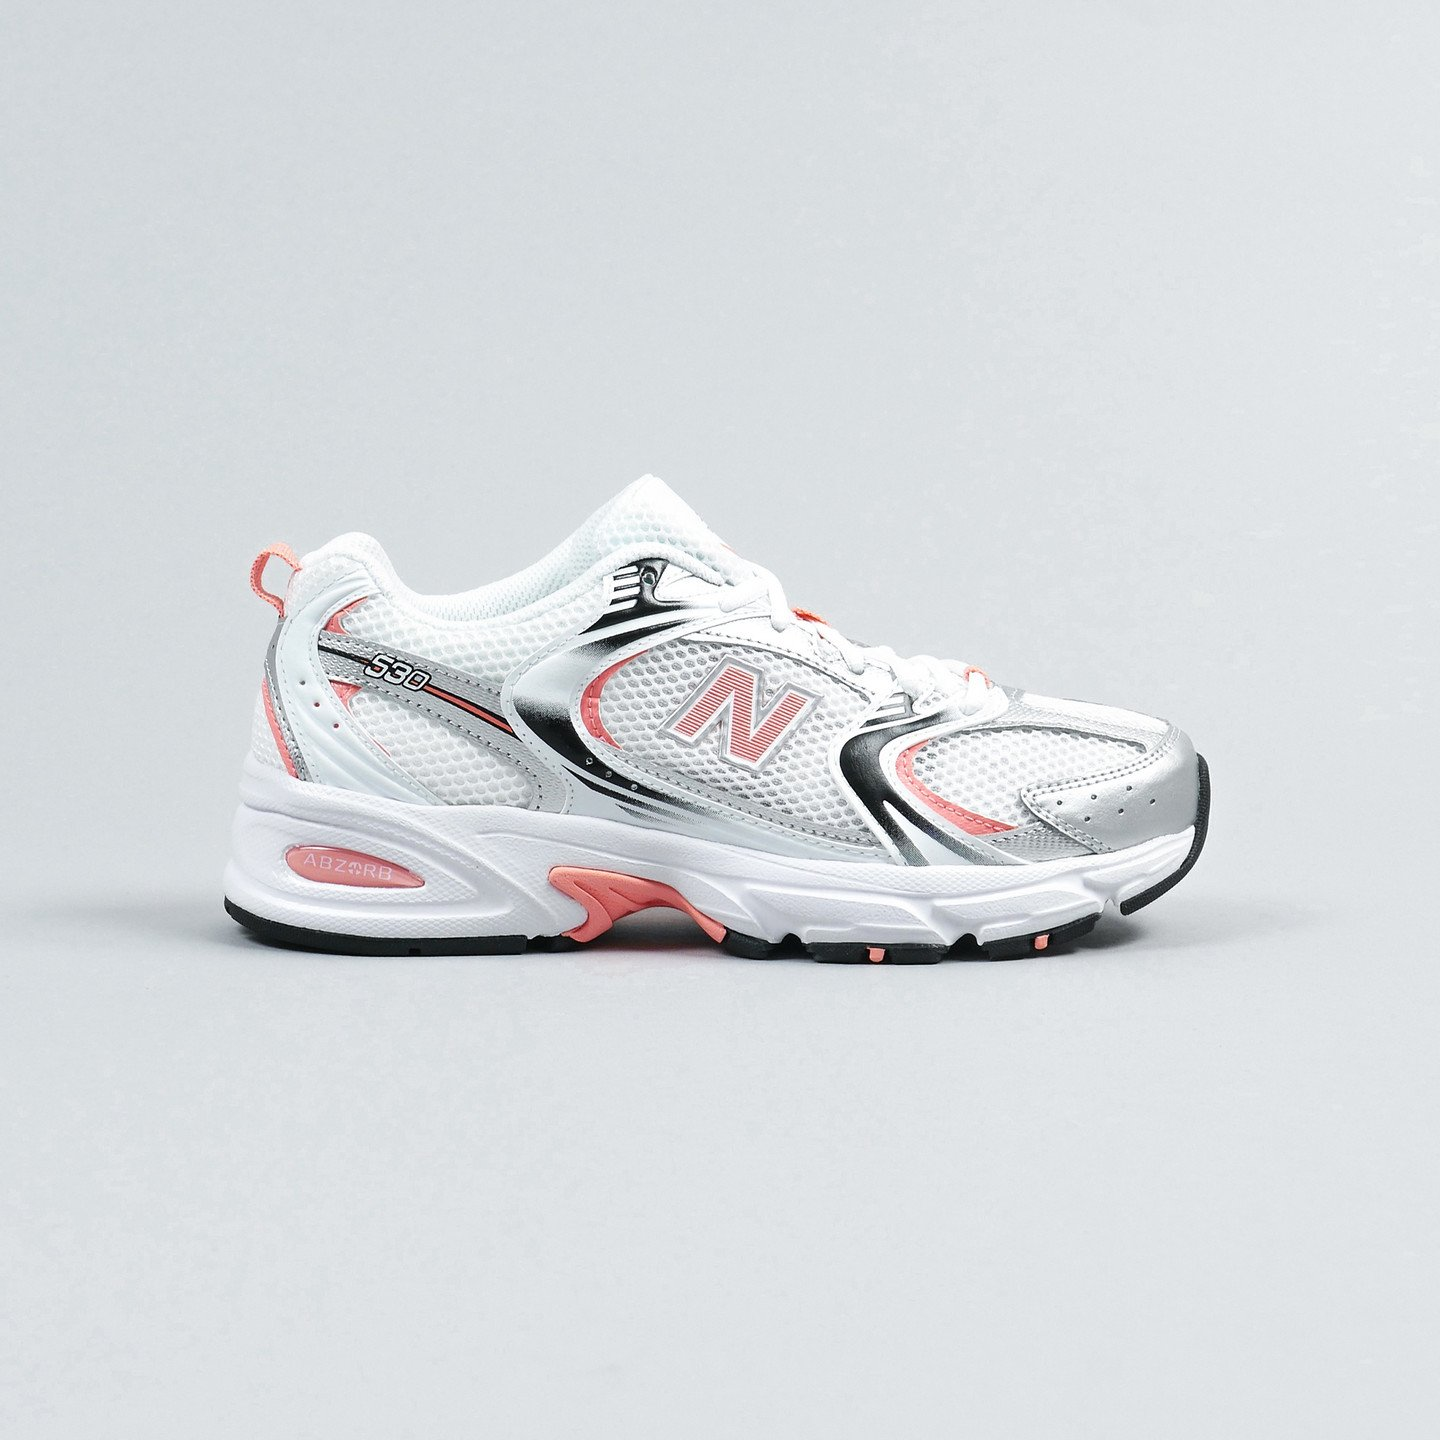 New Balance MR530 White / Coral / Silver MR530MAC